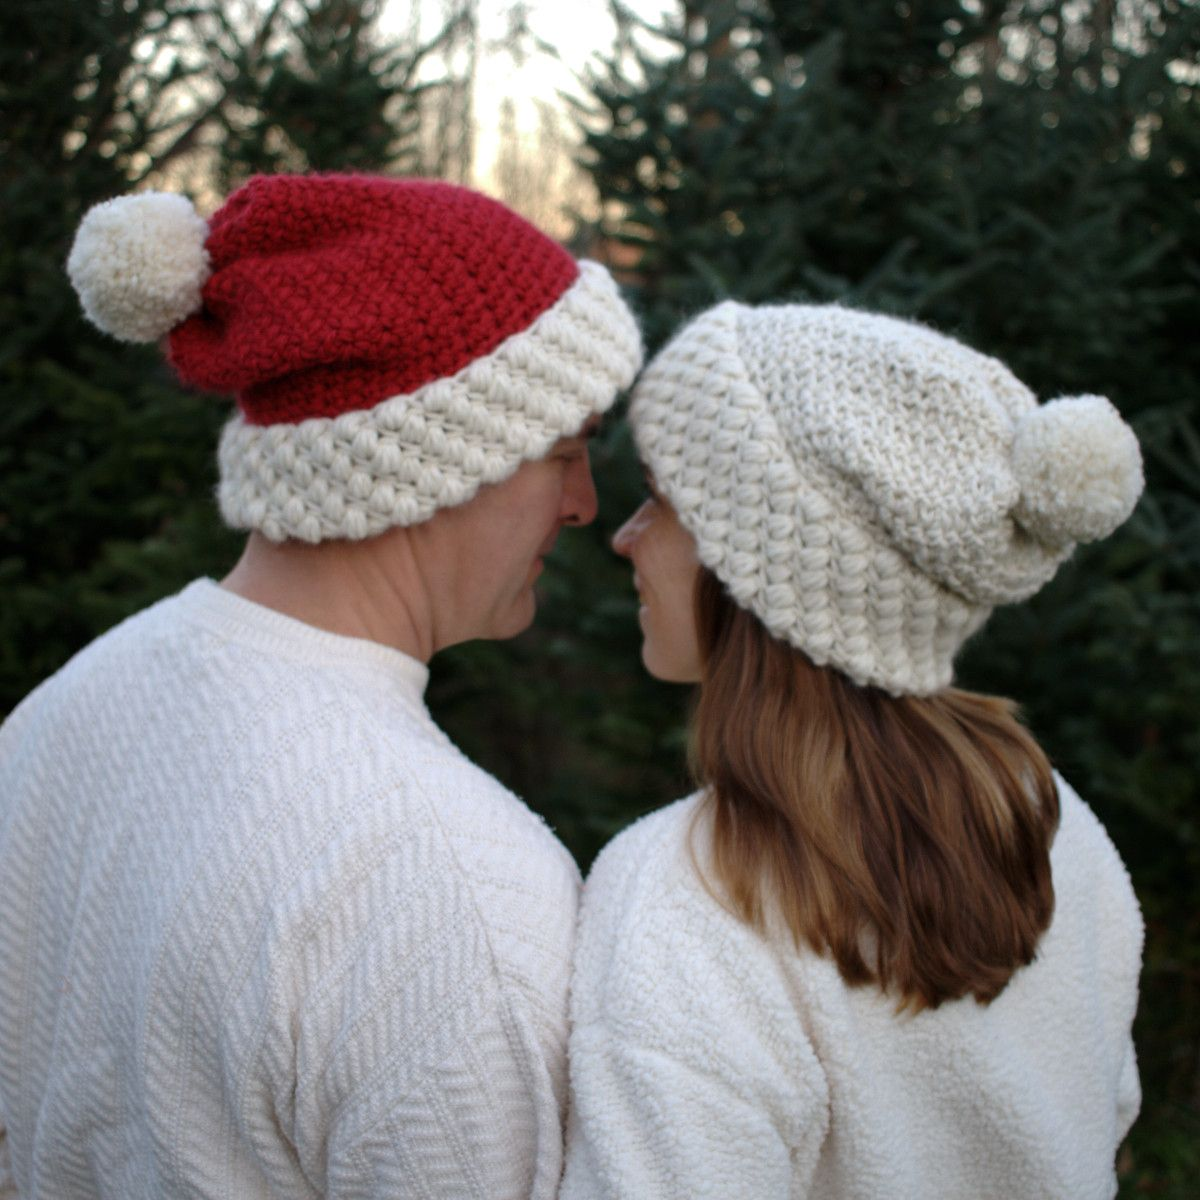 Red and white hat with pom pom